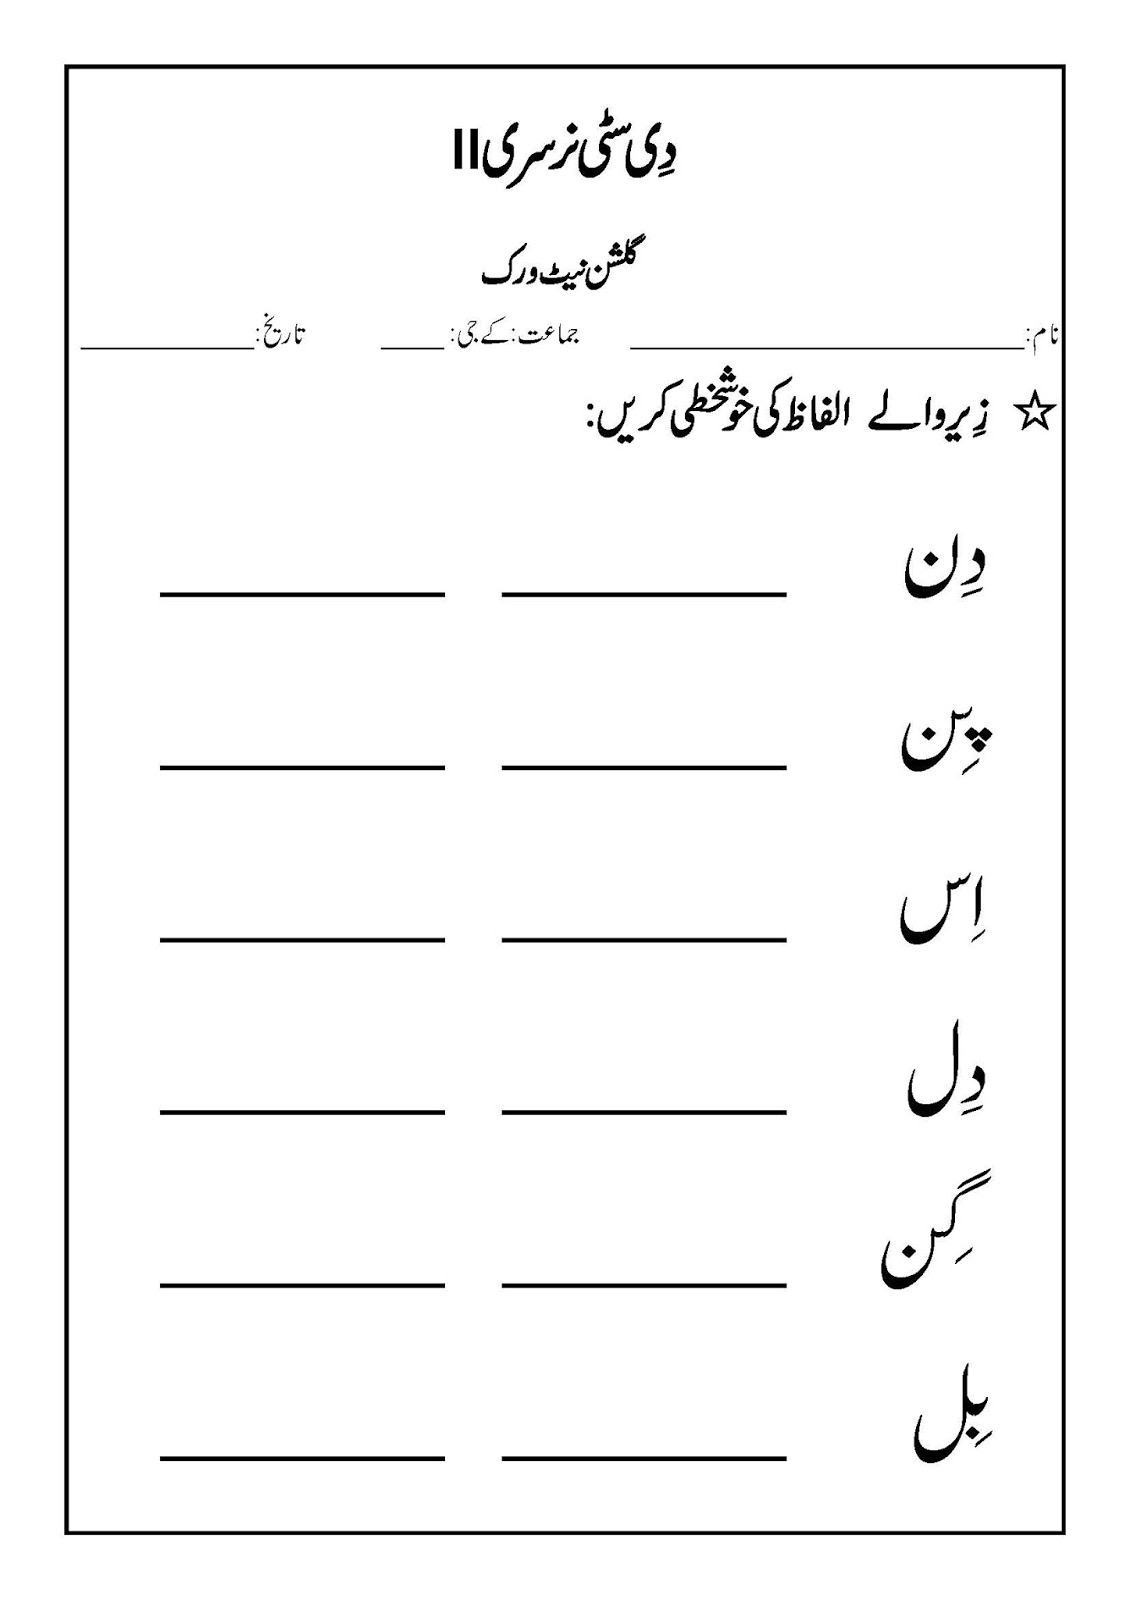 Sr Gulshan The City Nursery Ii Urdu Kuwa And English